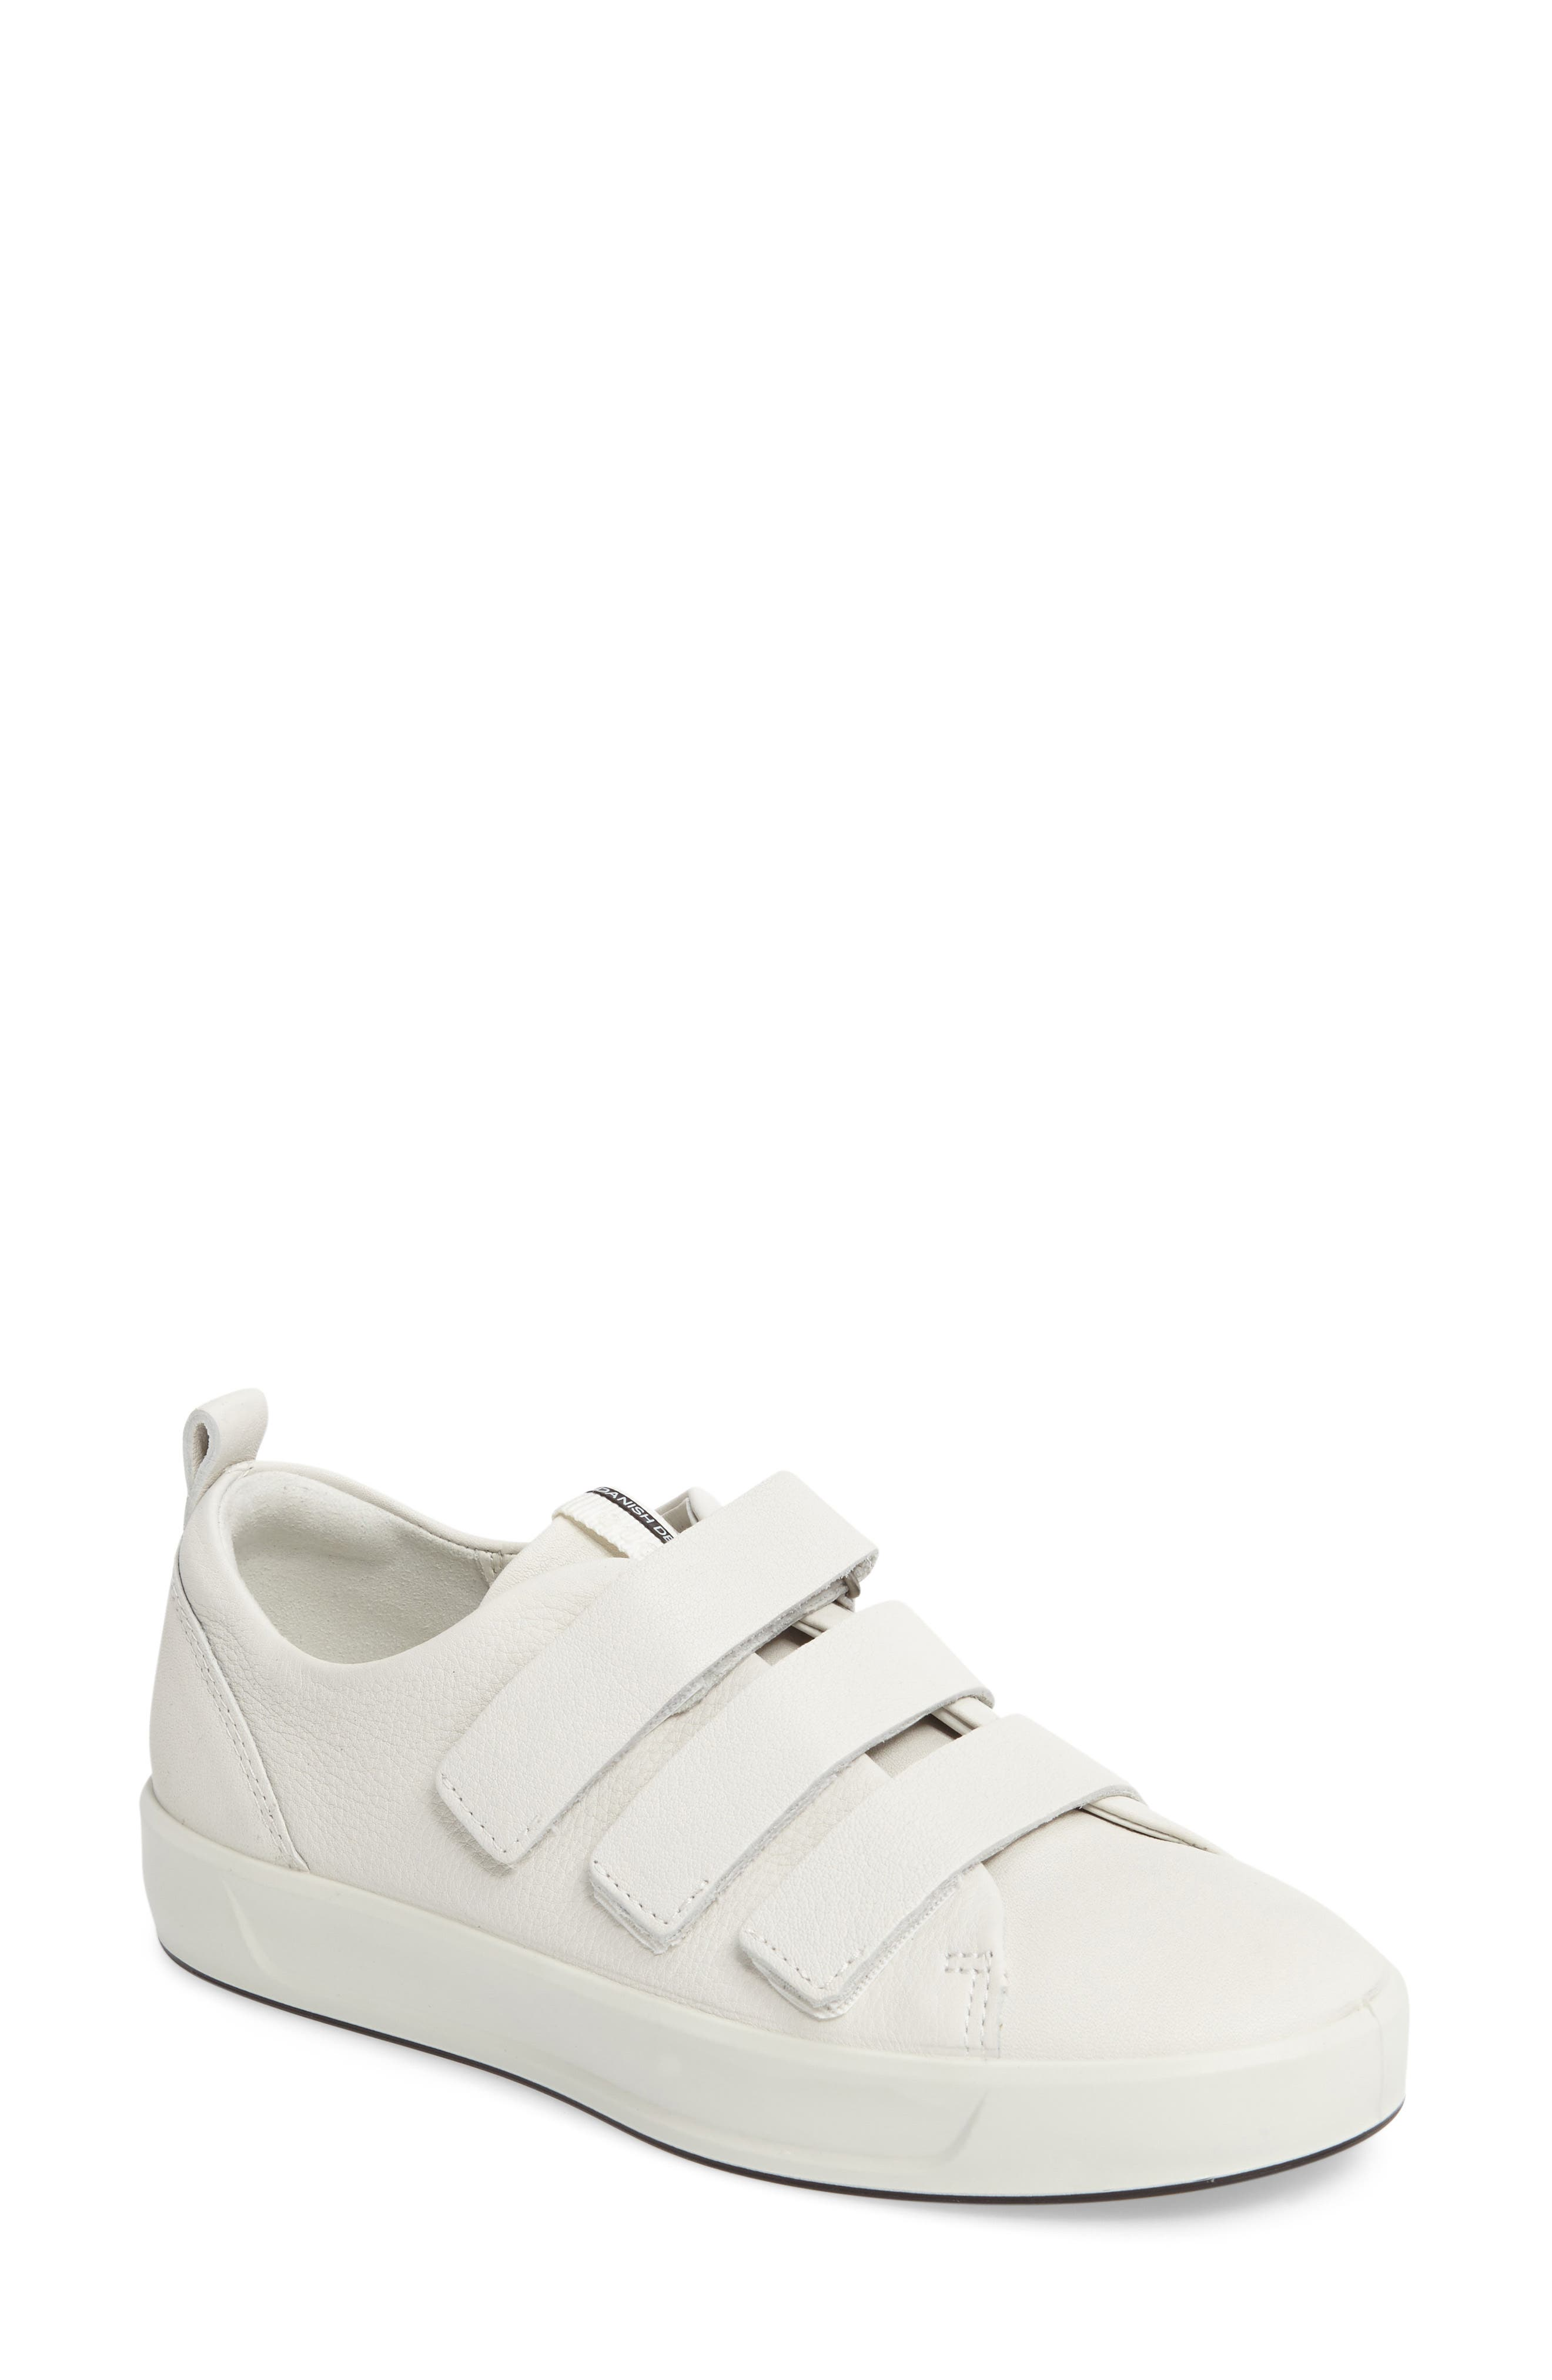 Soft 8 Sneaker,                             Main thumbnail 1, color,                             White Leather